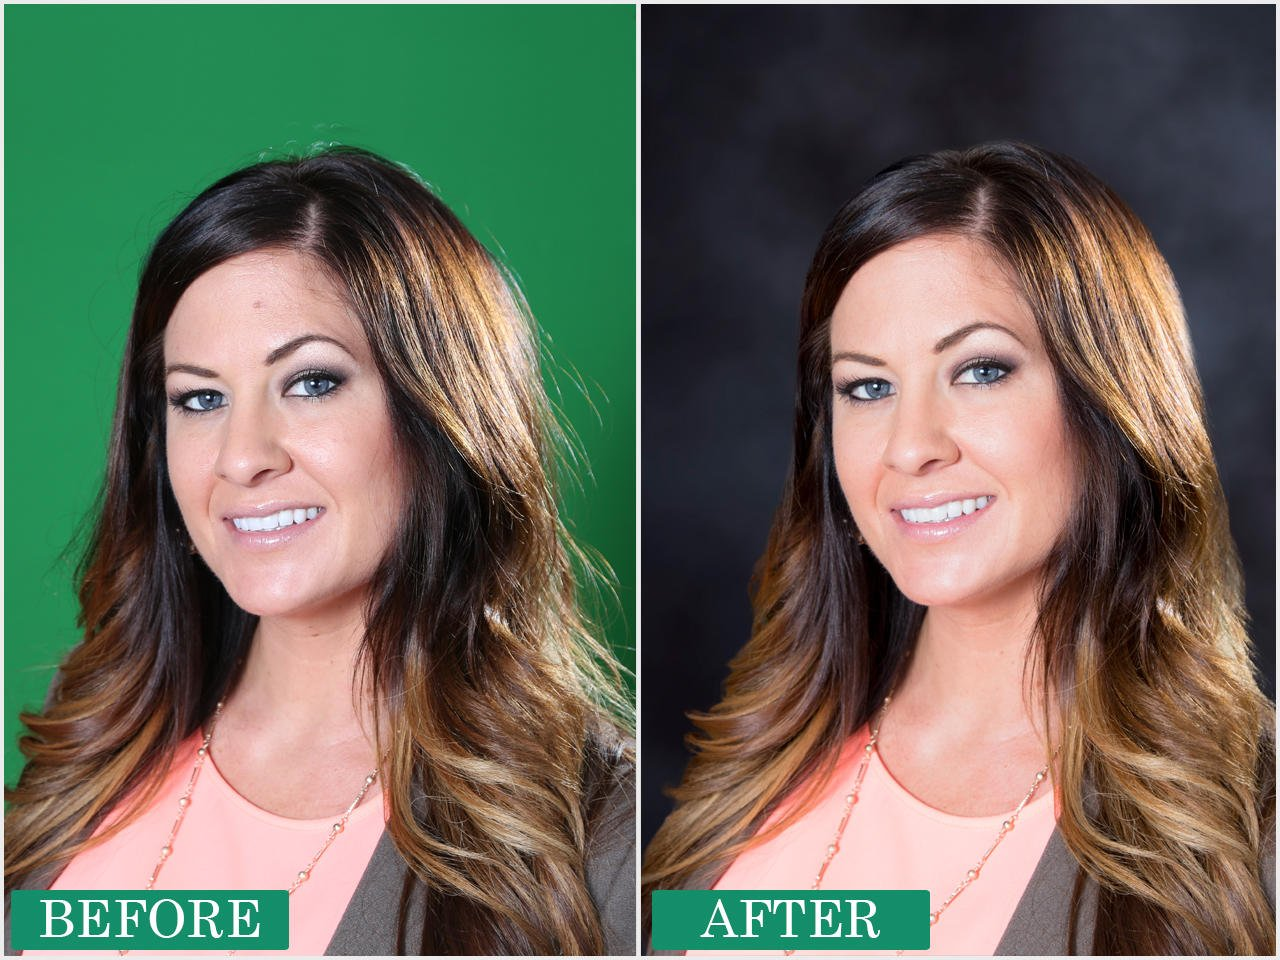 Professional Headshot Retouching with Green Screen Removal by sk619 - 12923